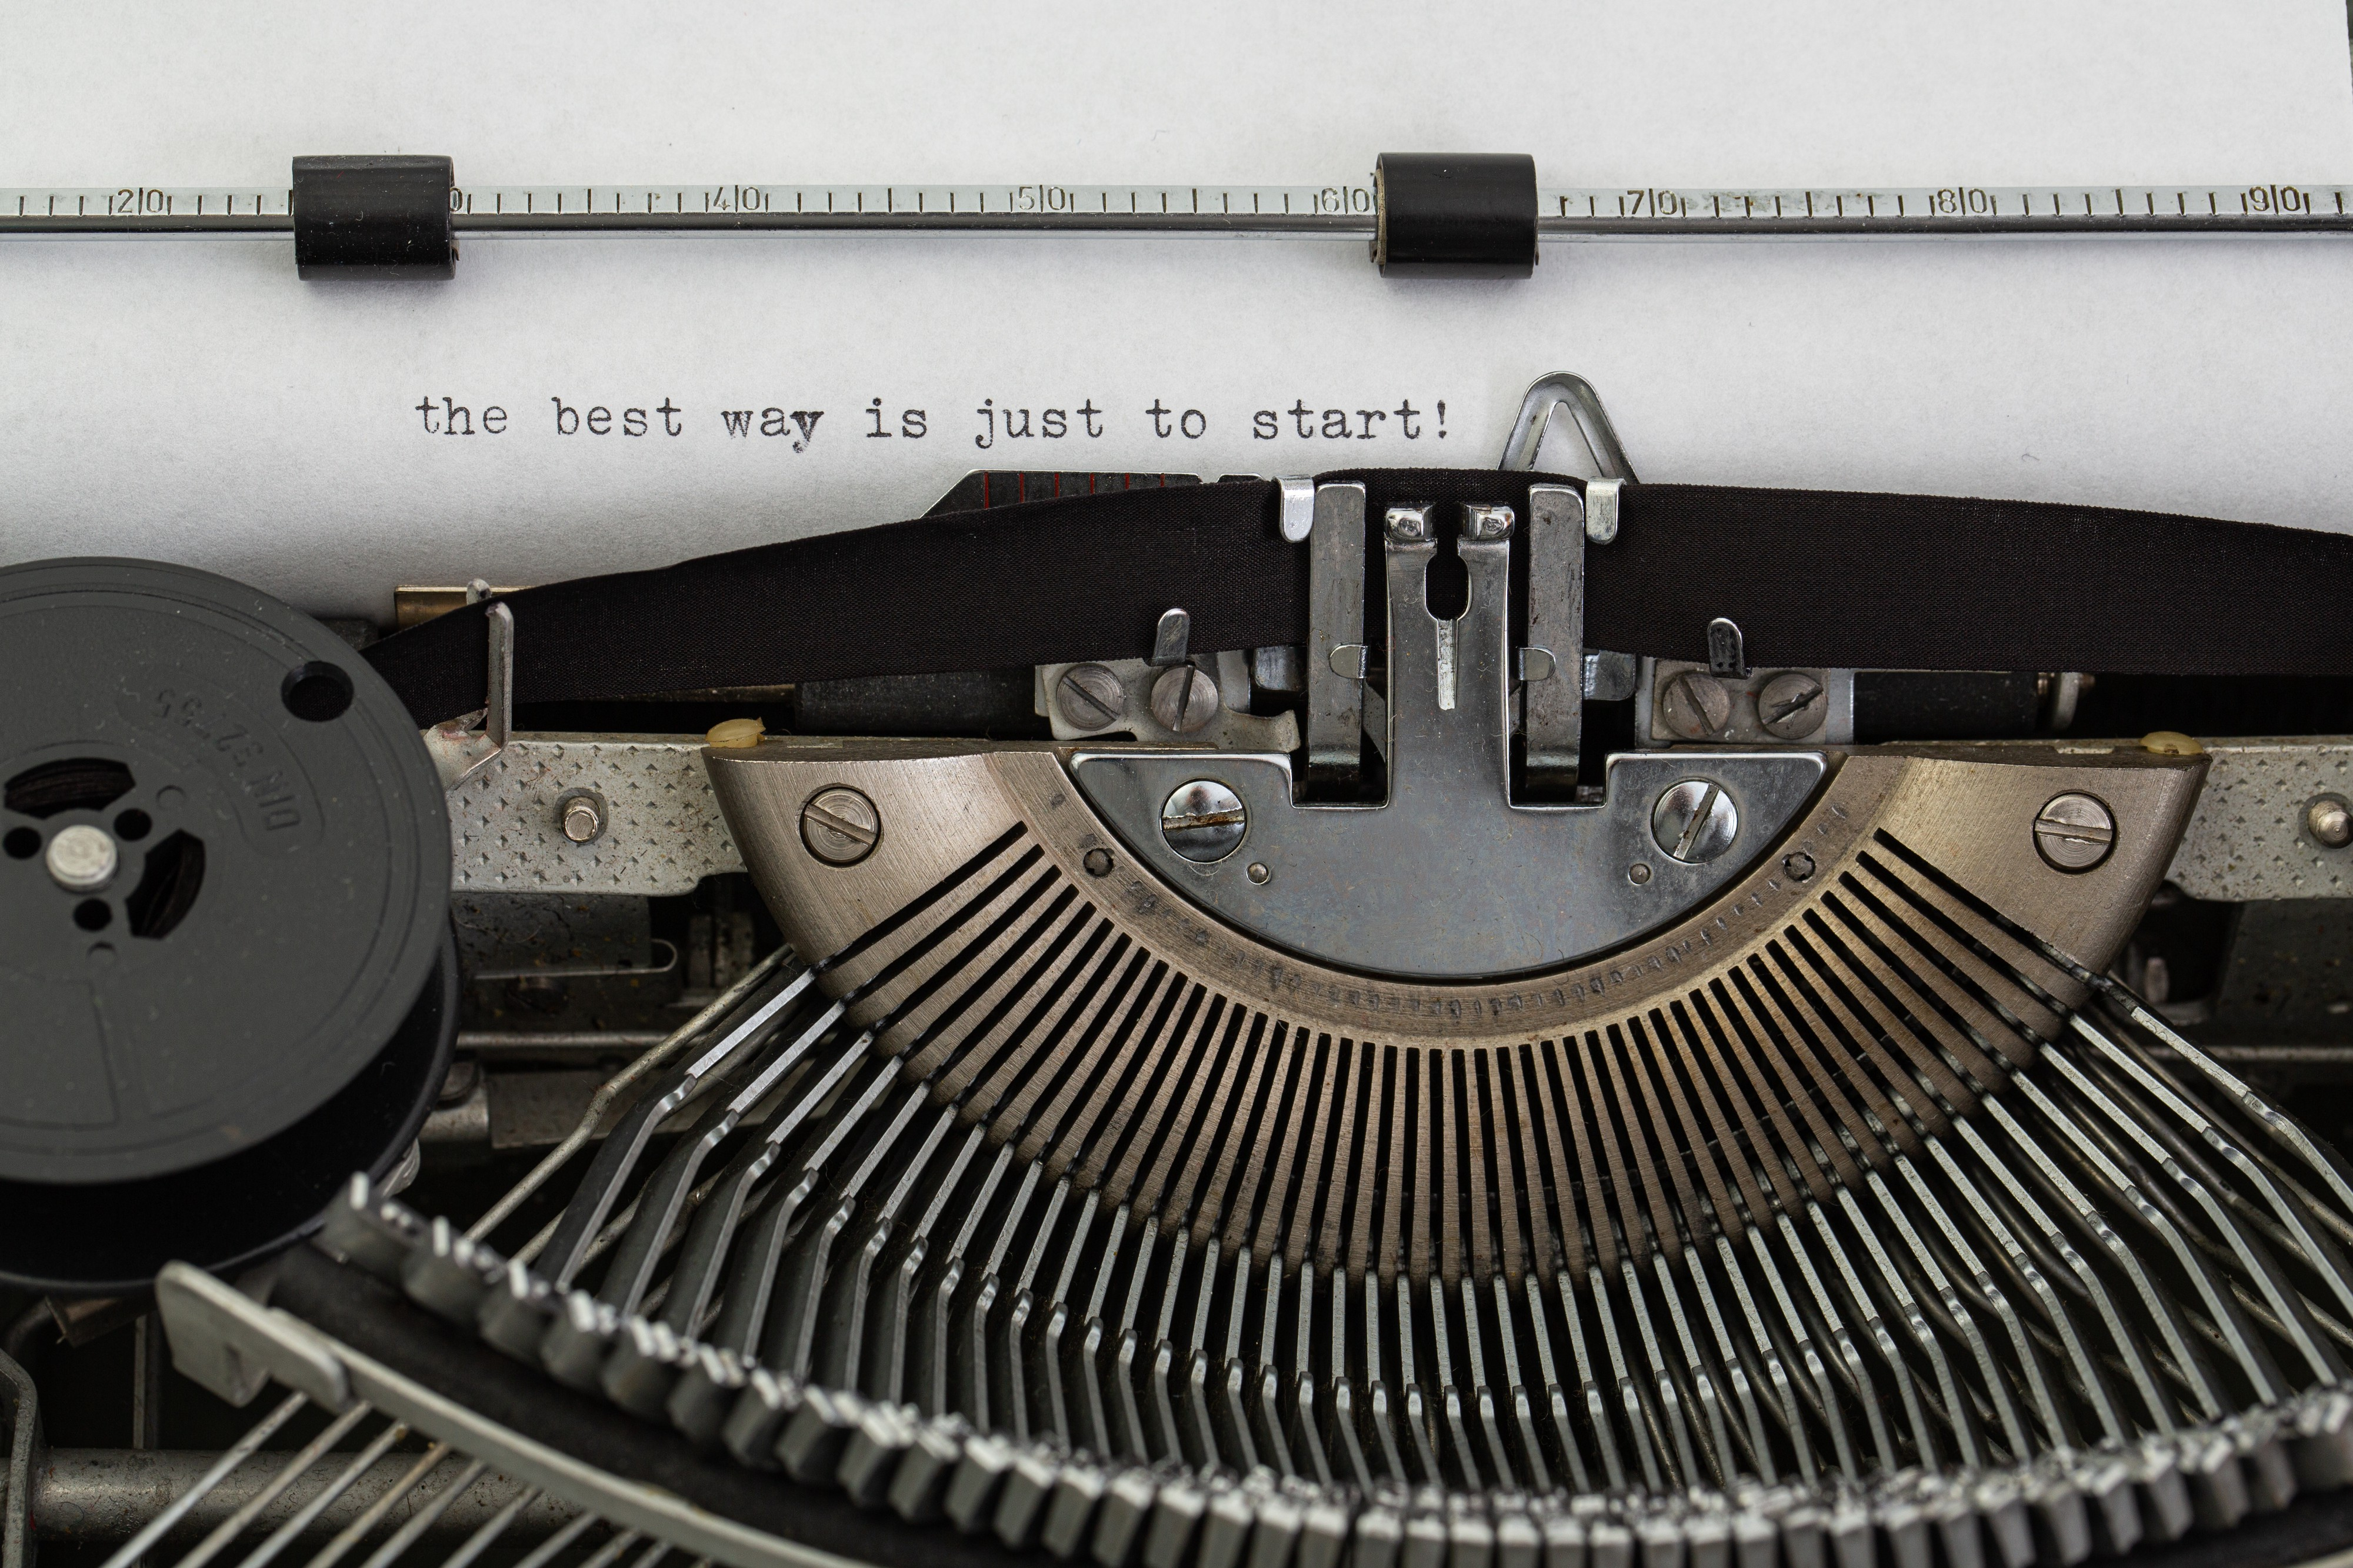 Typewriter with the words the best way is to just start written on paper